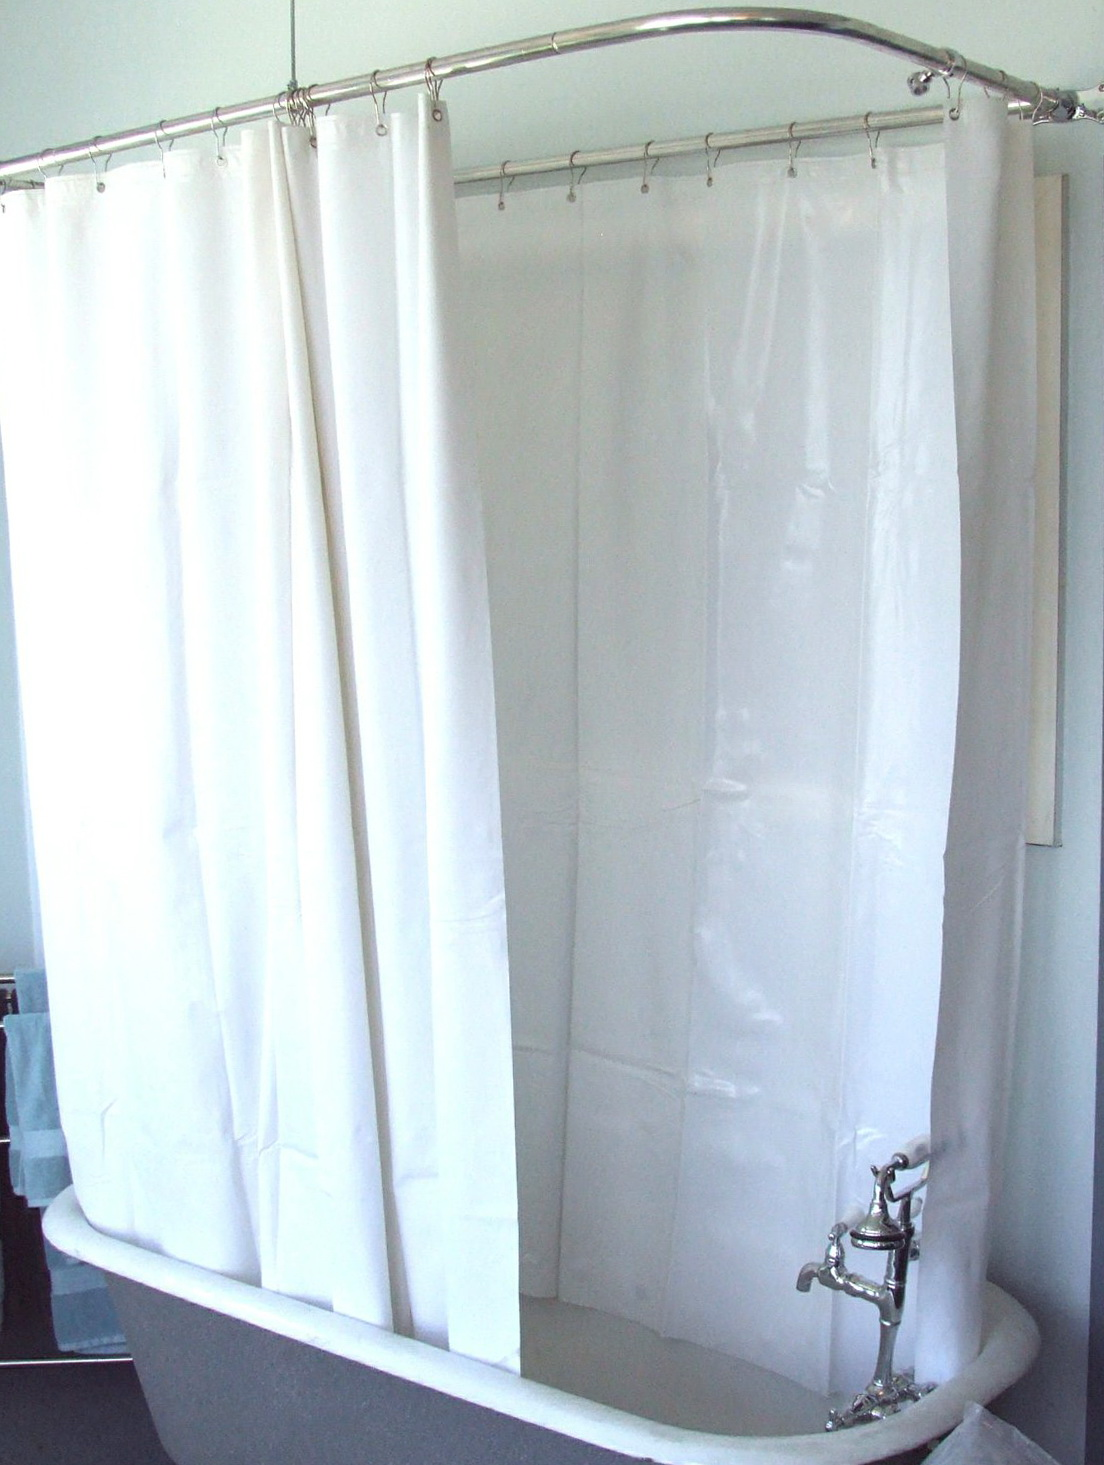 Shower Curtains For Clawfoot Tub Canada | Home Design Ideas